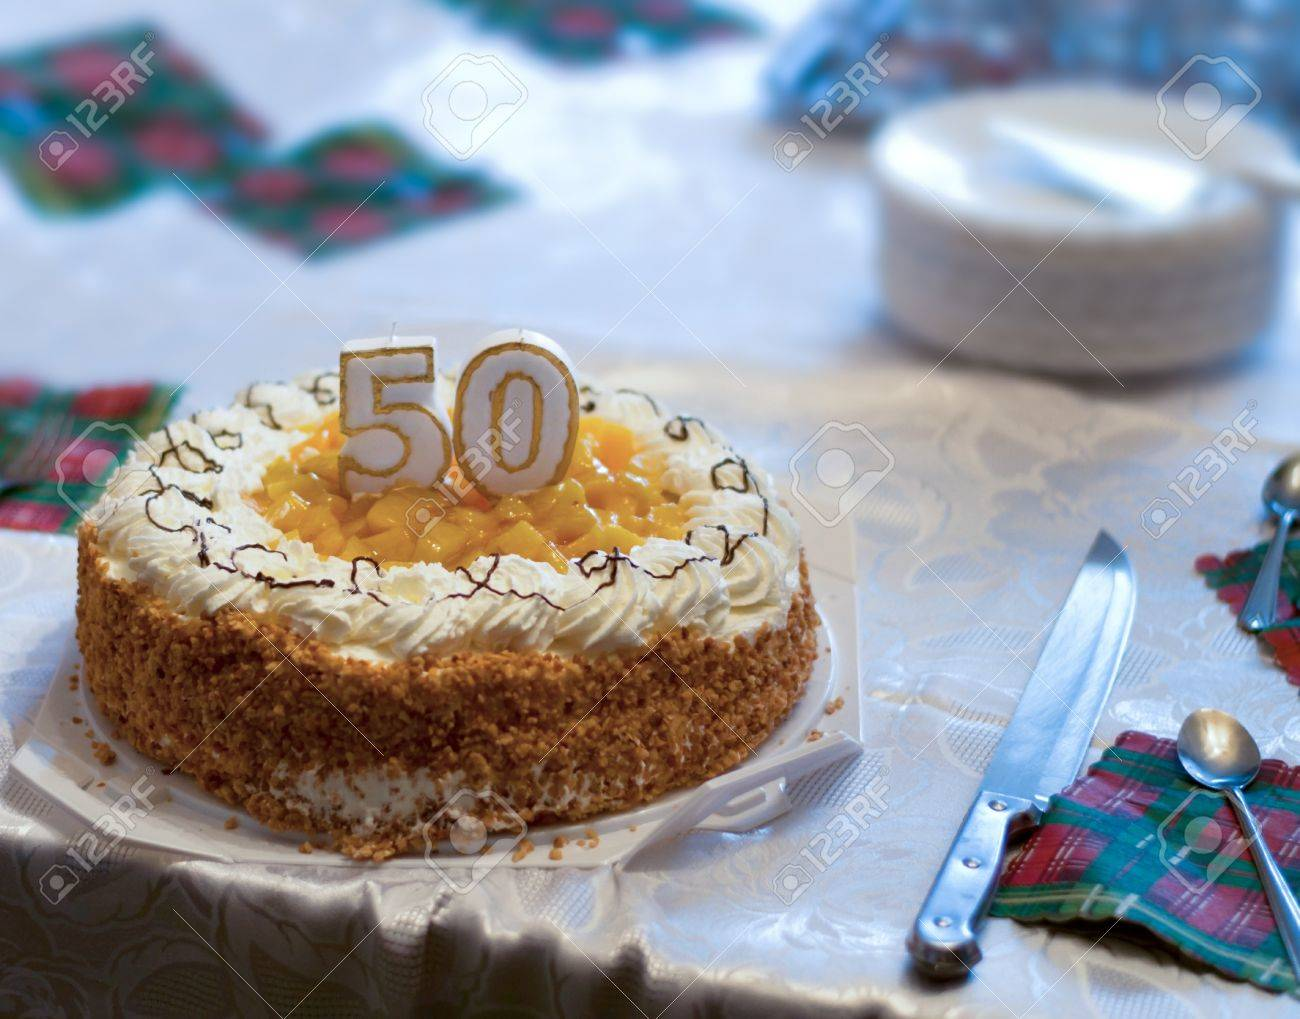 50th Birthday Cake On Table In Poor Family Stock Photo